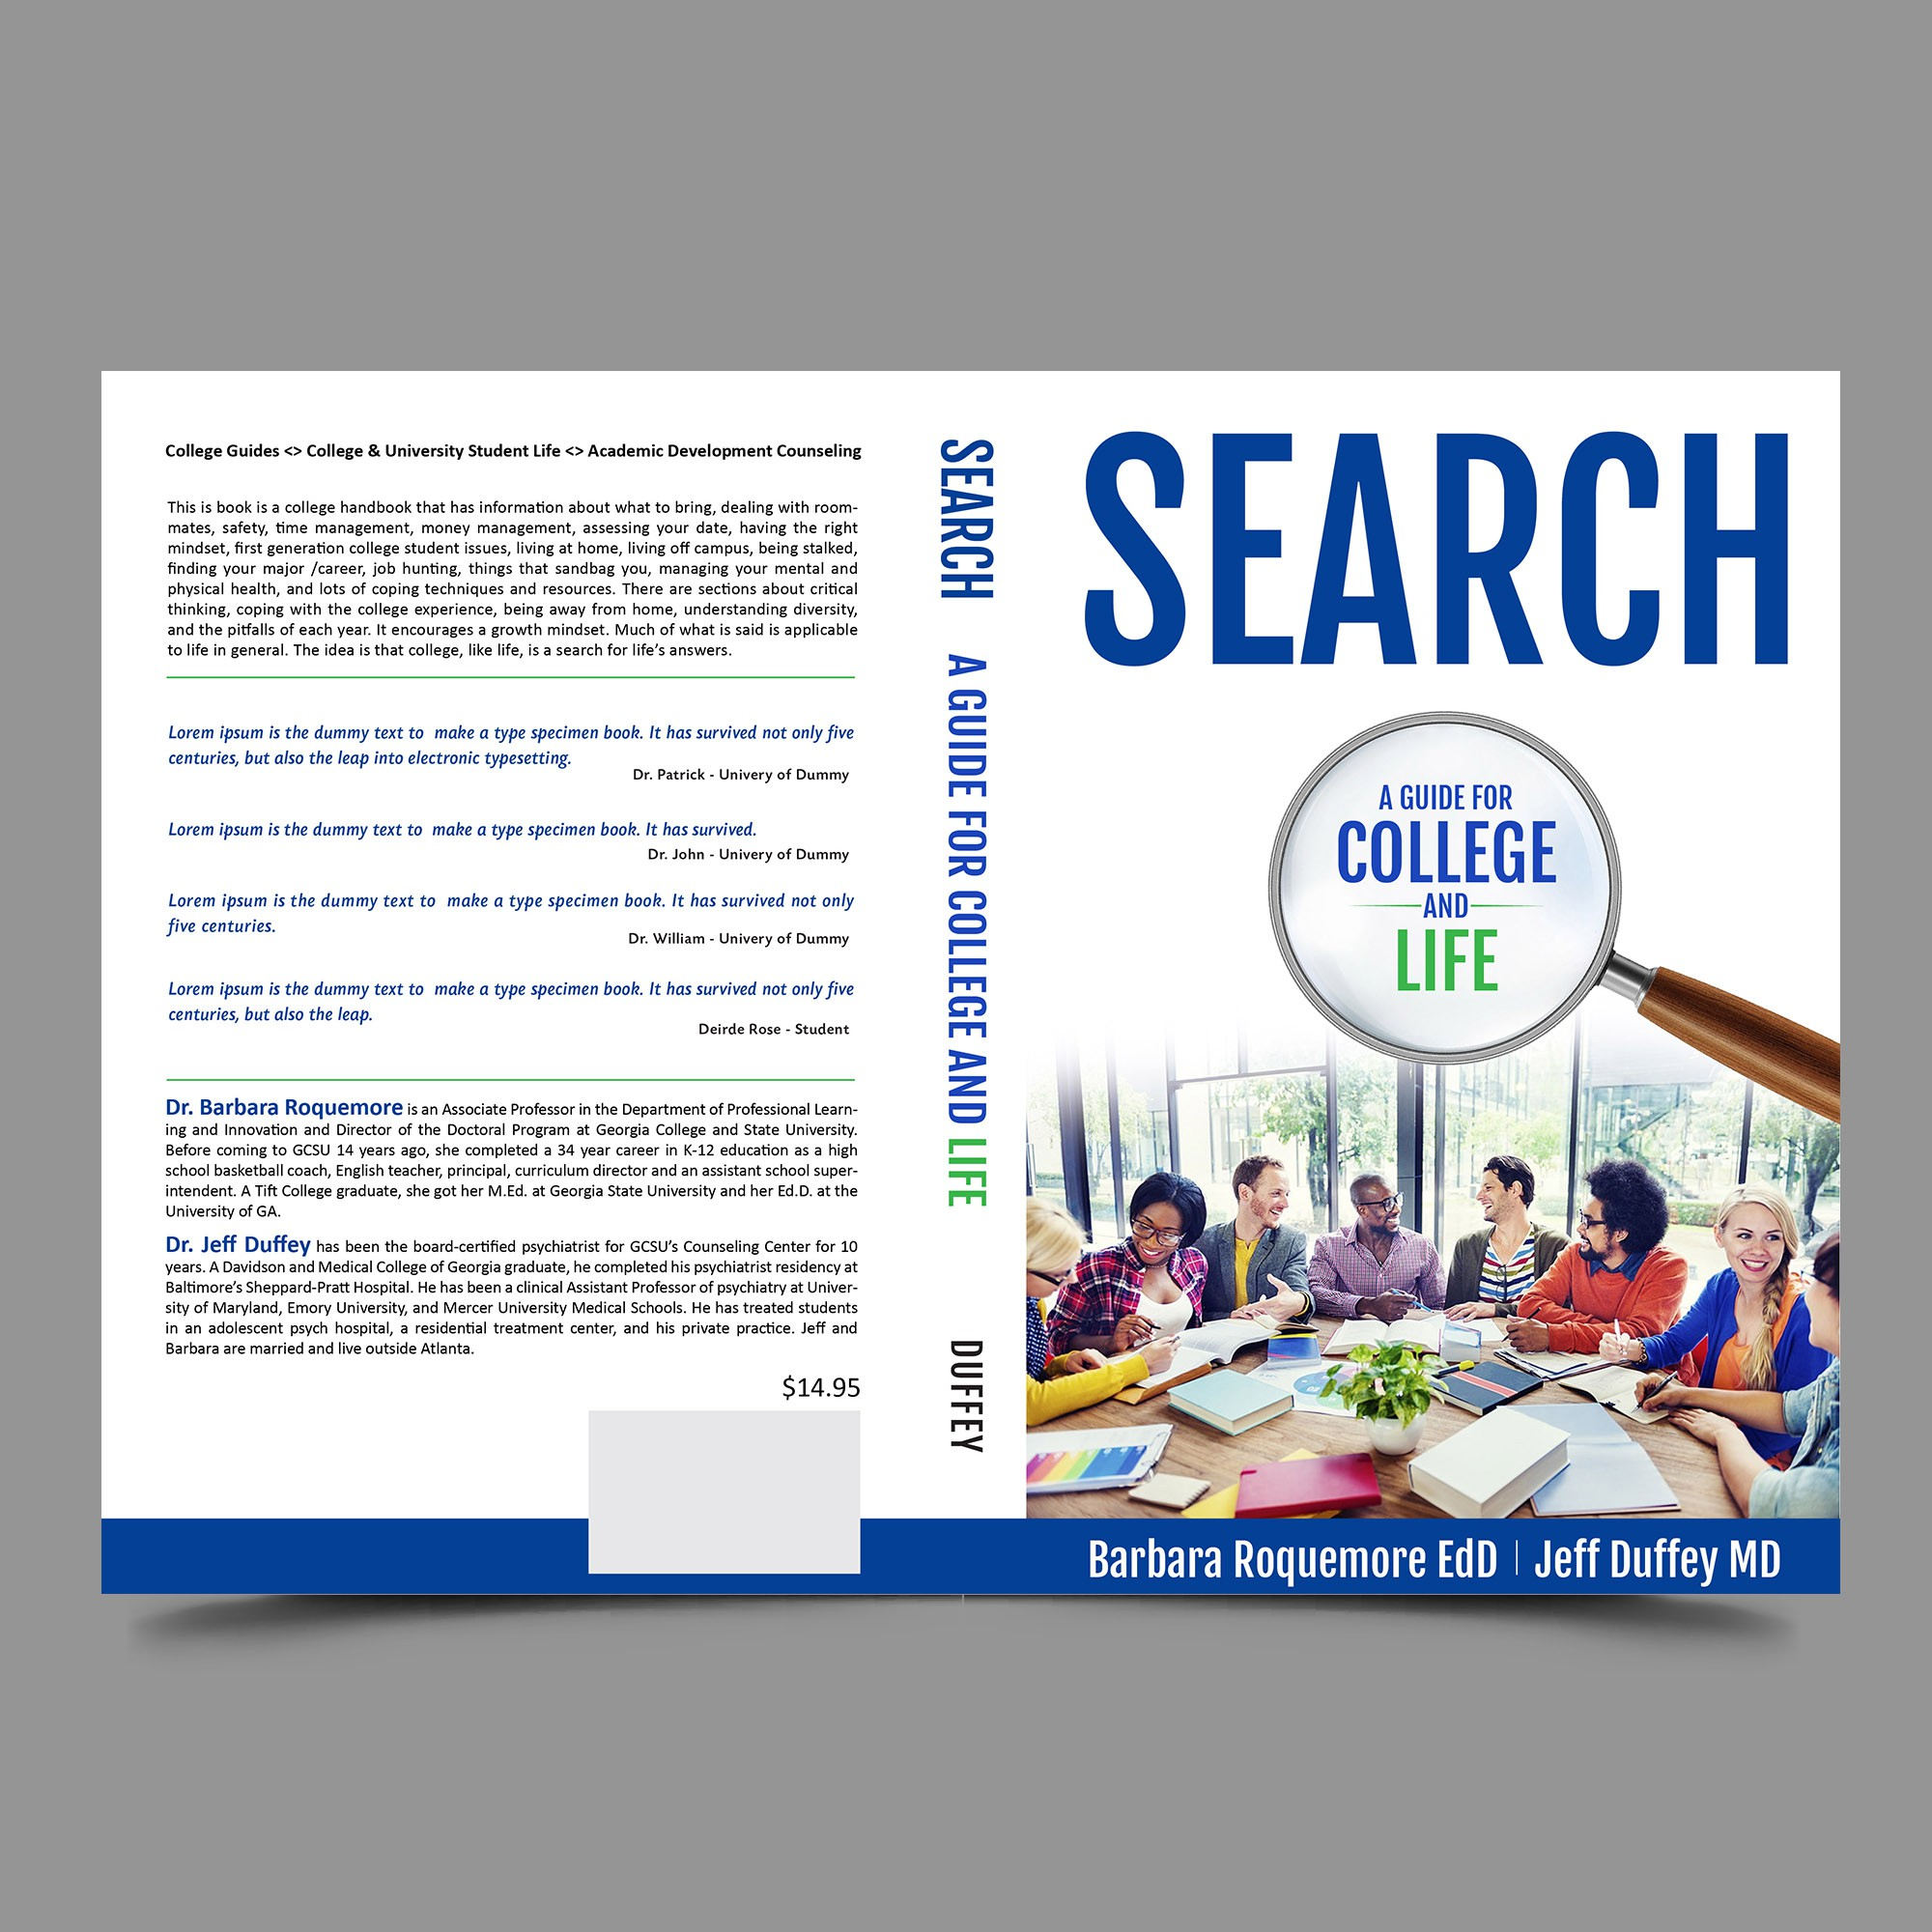 SEARCH: A Guide for College and Life